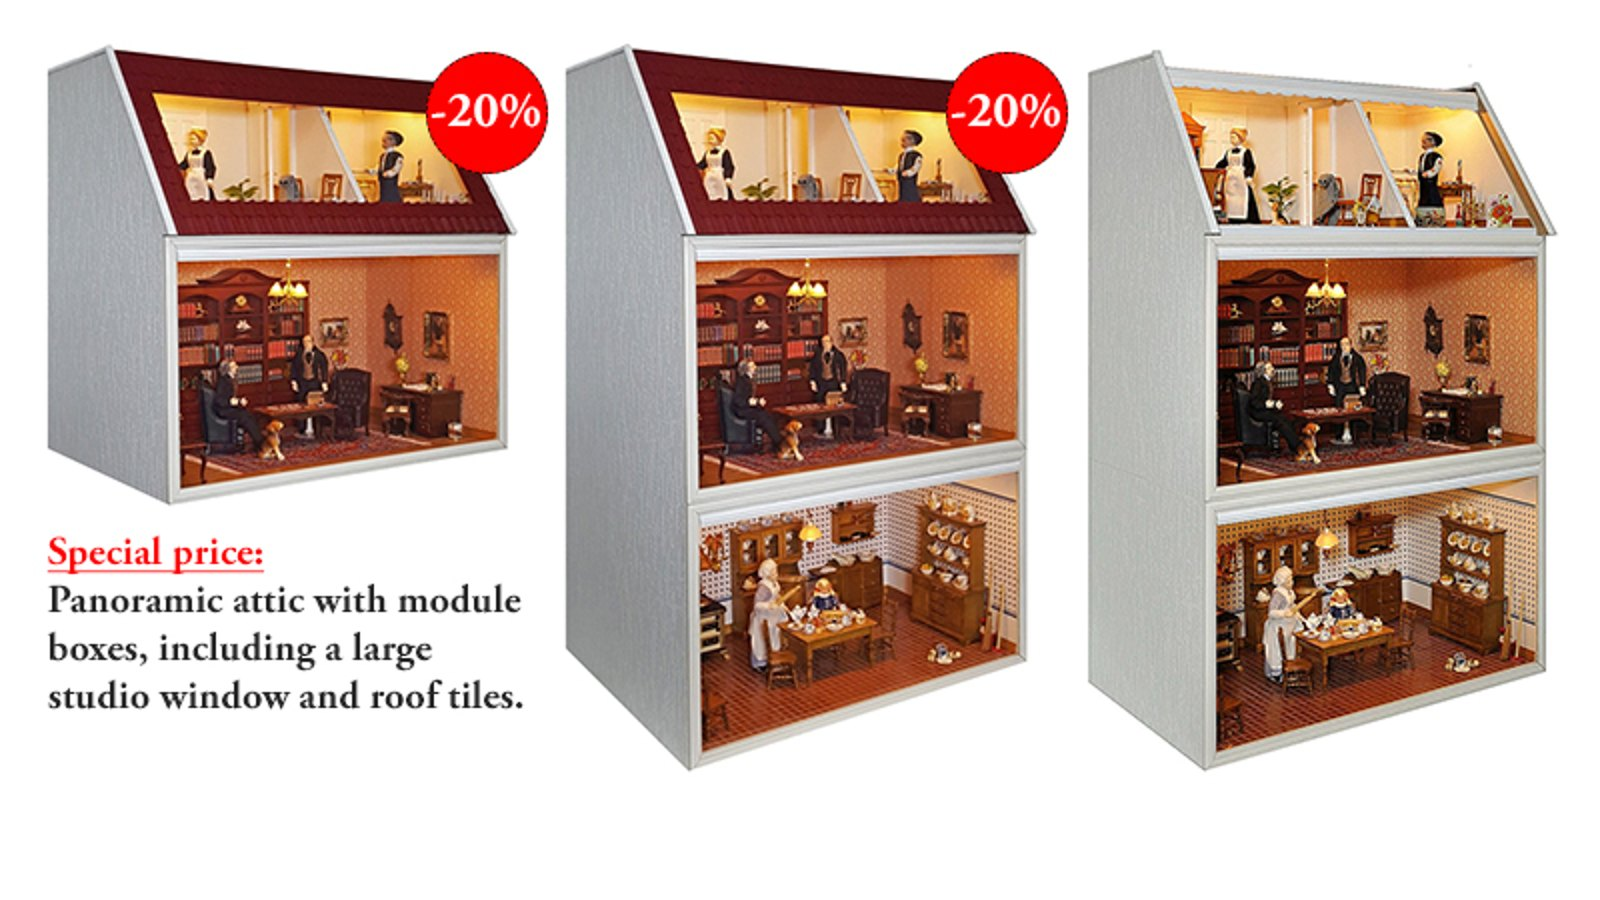 The attractive panoramic top floor with the removable studio window!